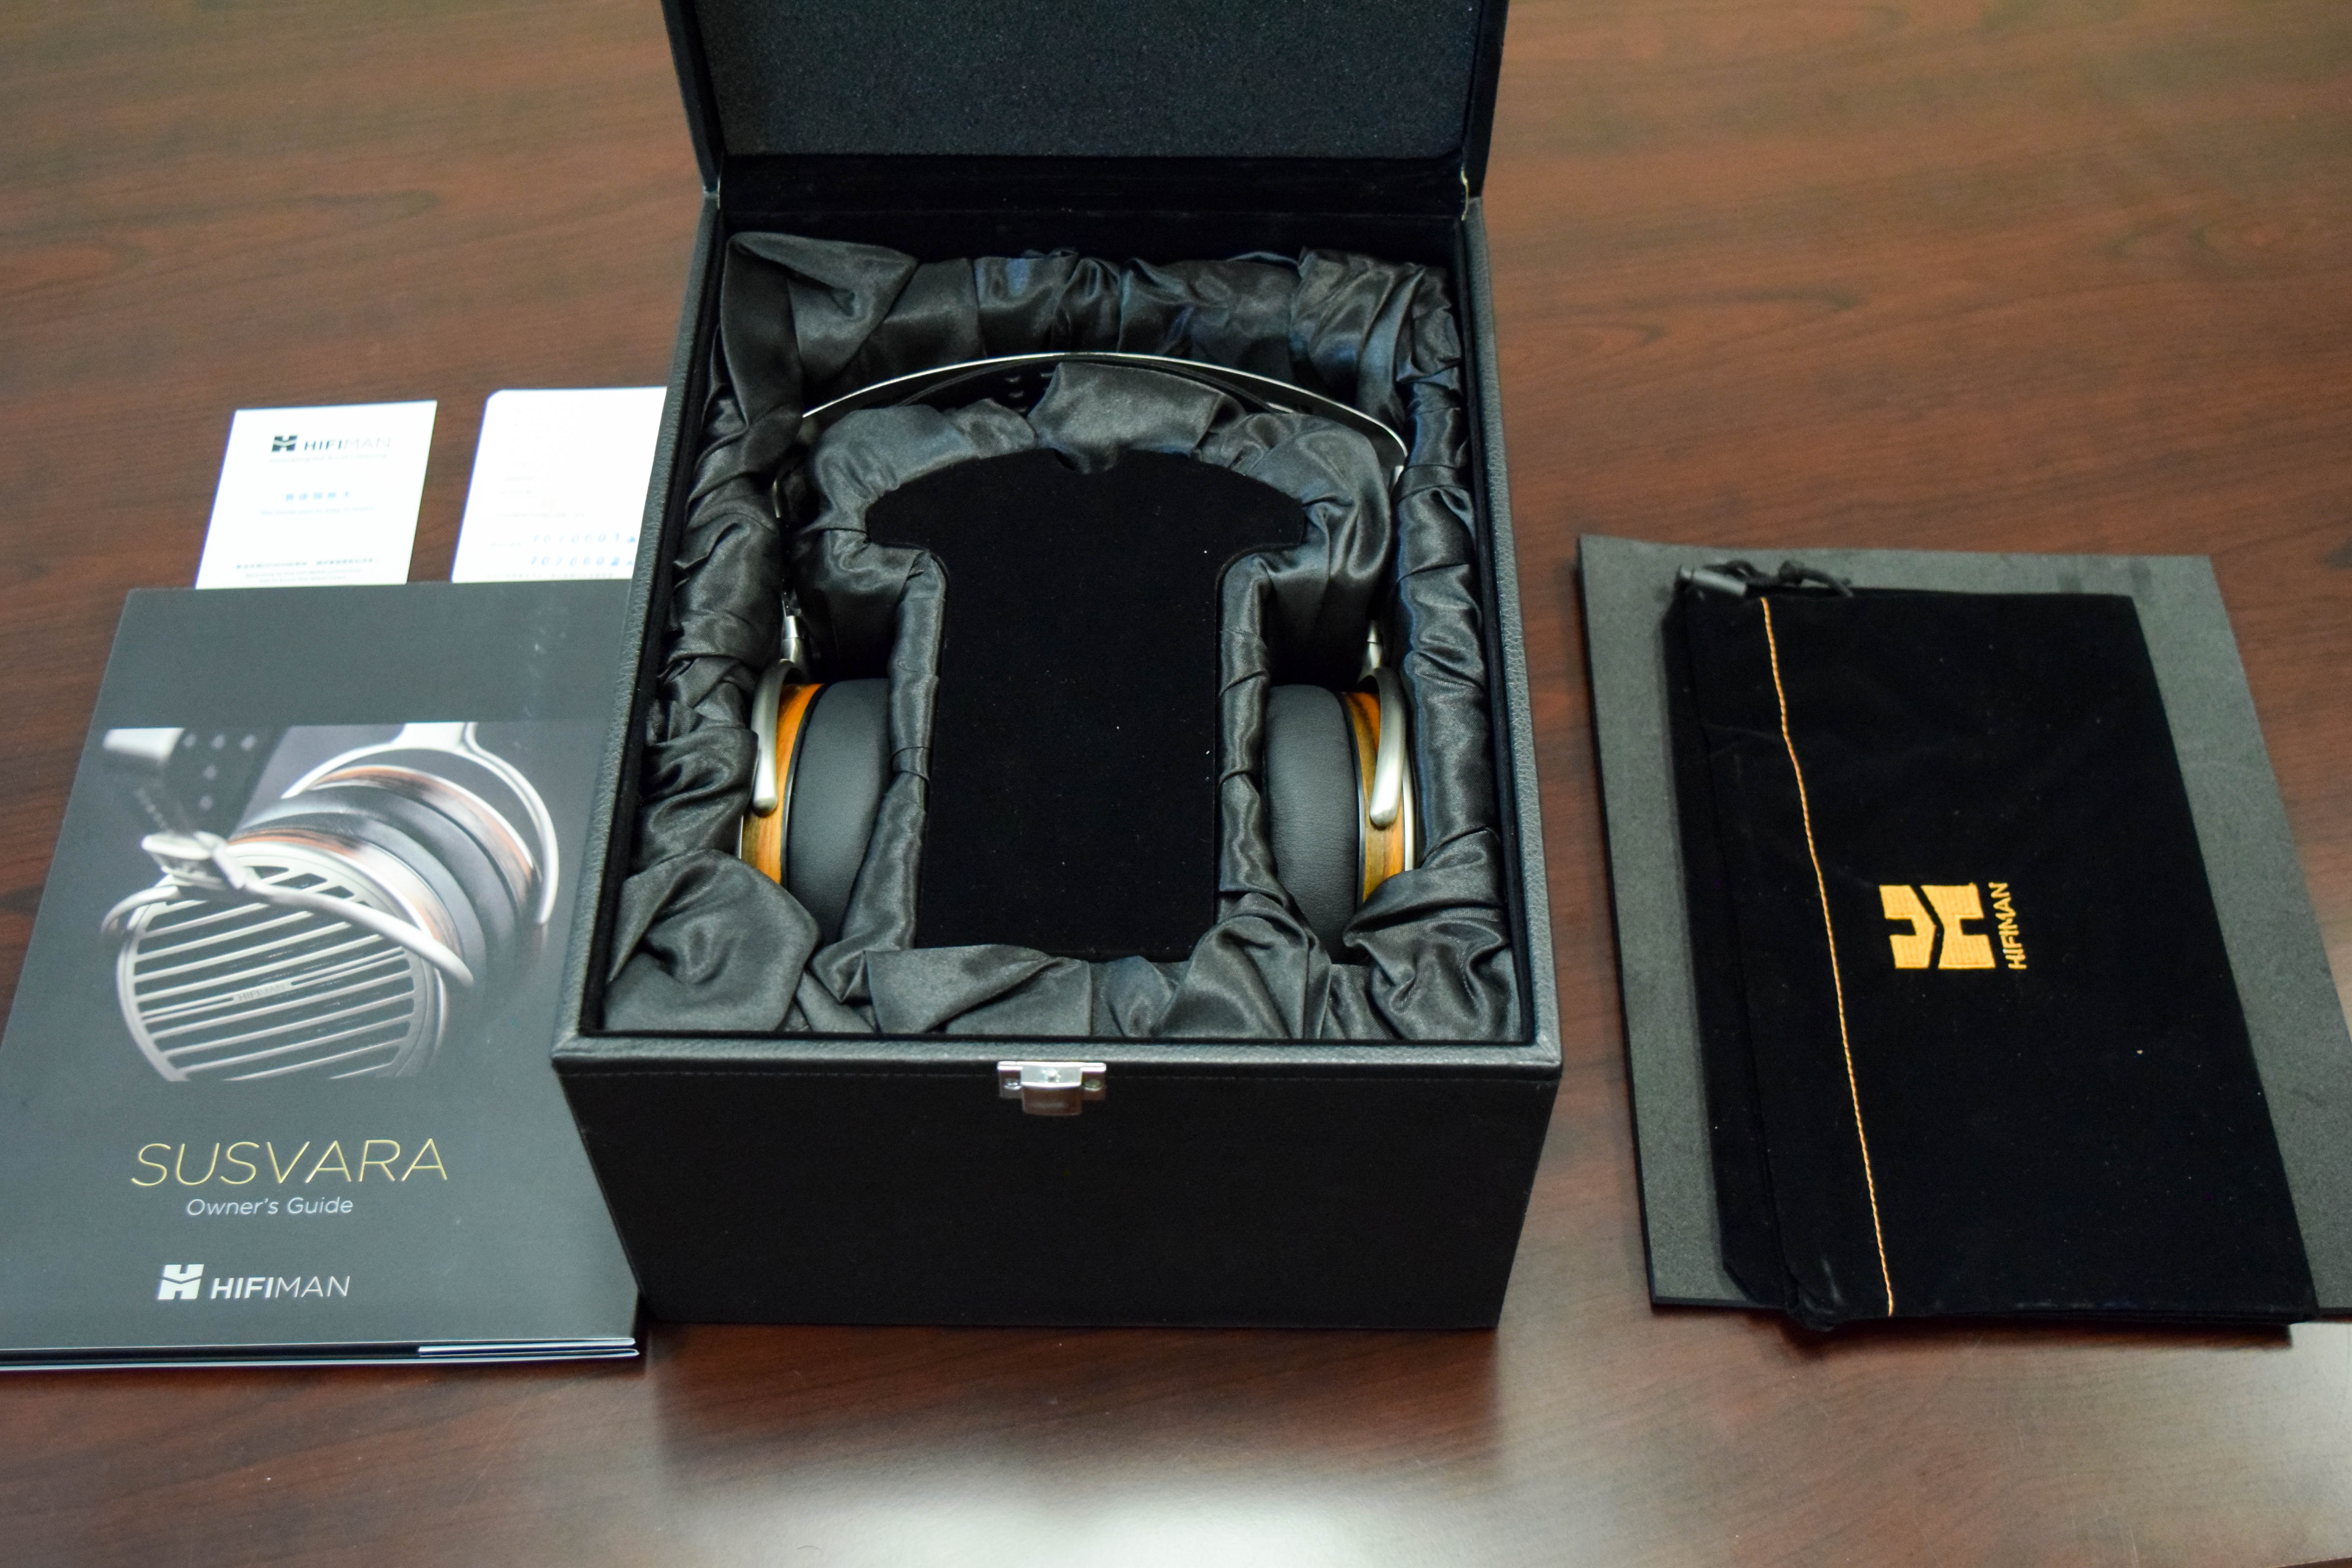 HiFiMAN Susvara headphones in open case